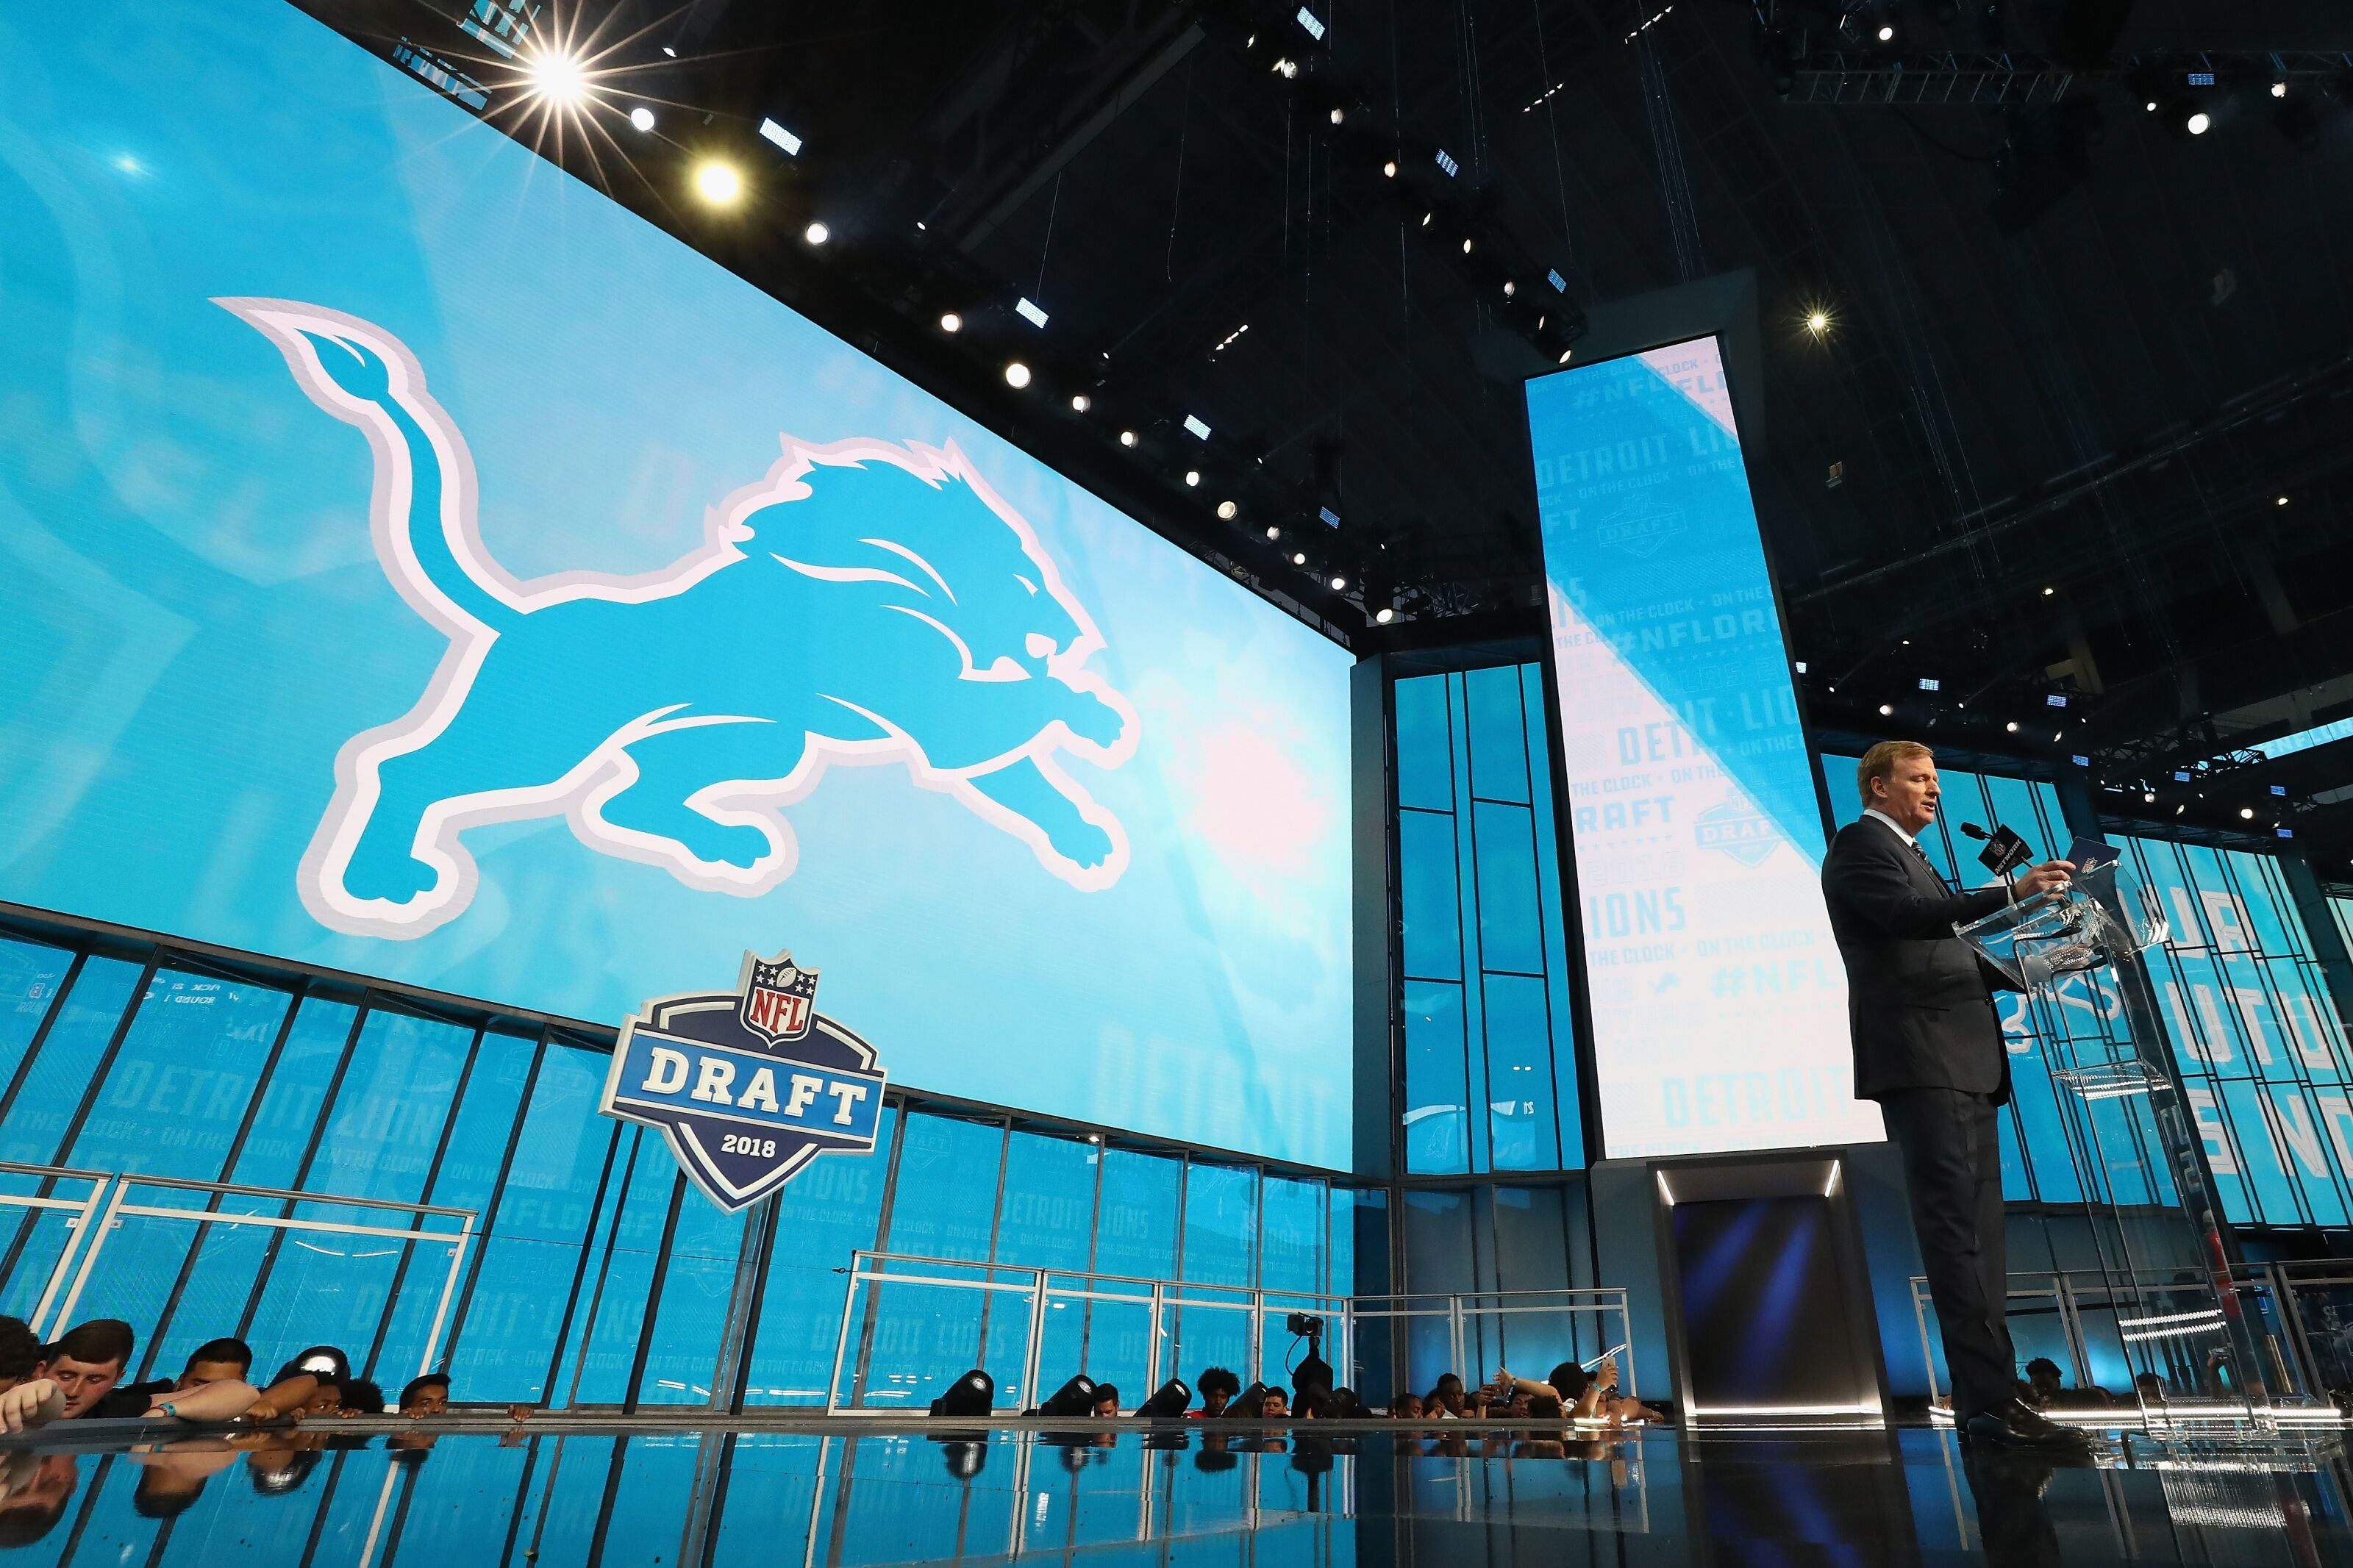 Detroit Lions: It's officially time to start tanking for the draft